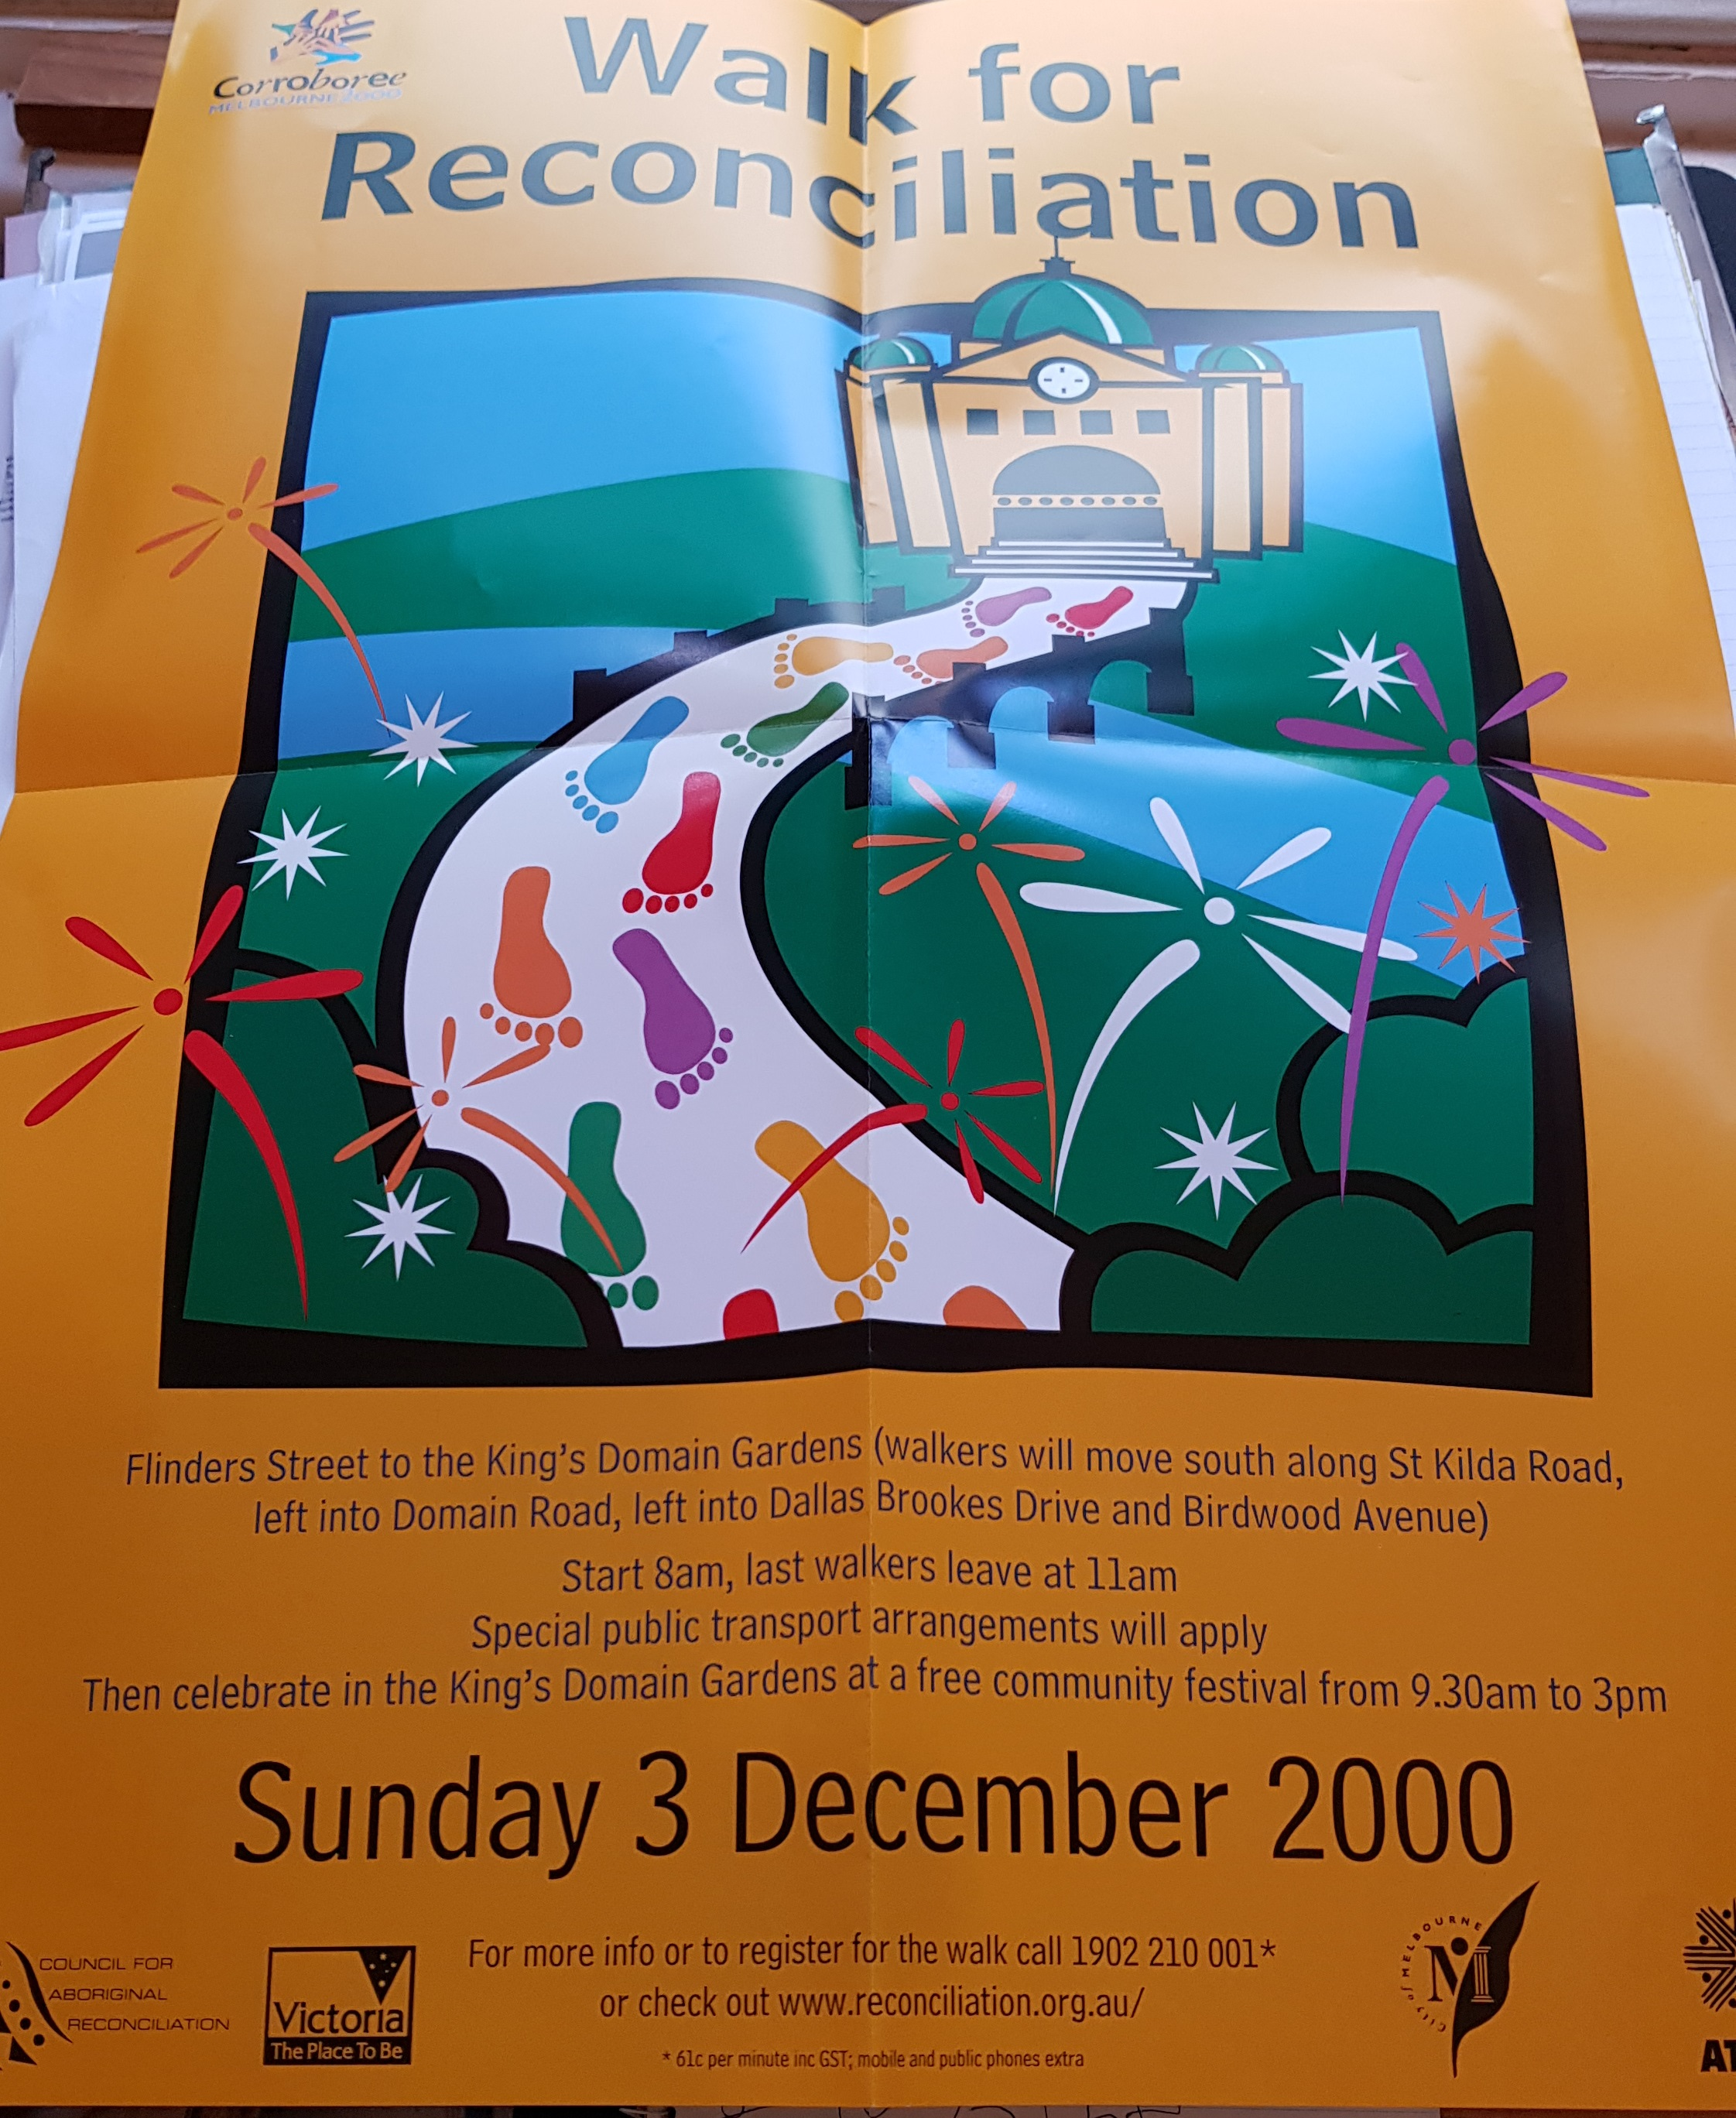 Walk_for_reconciliation_poster.jpg